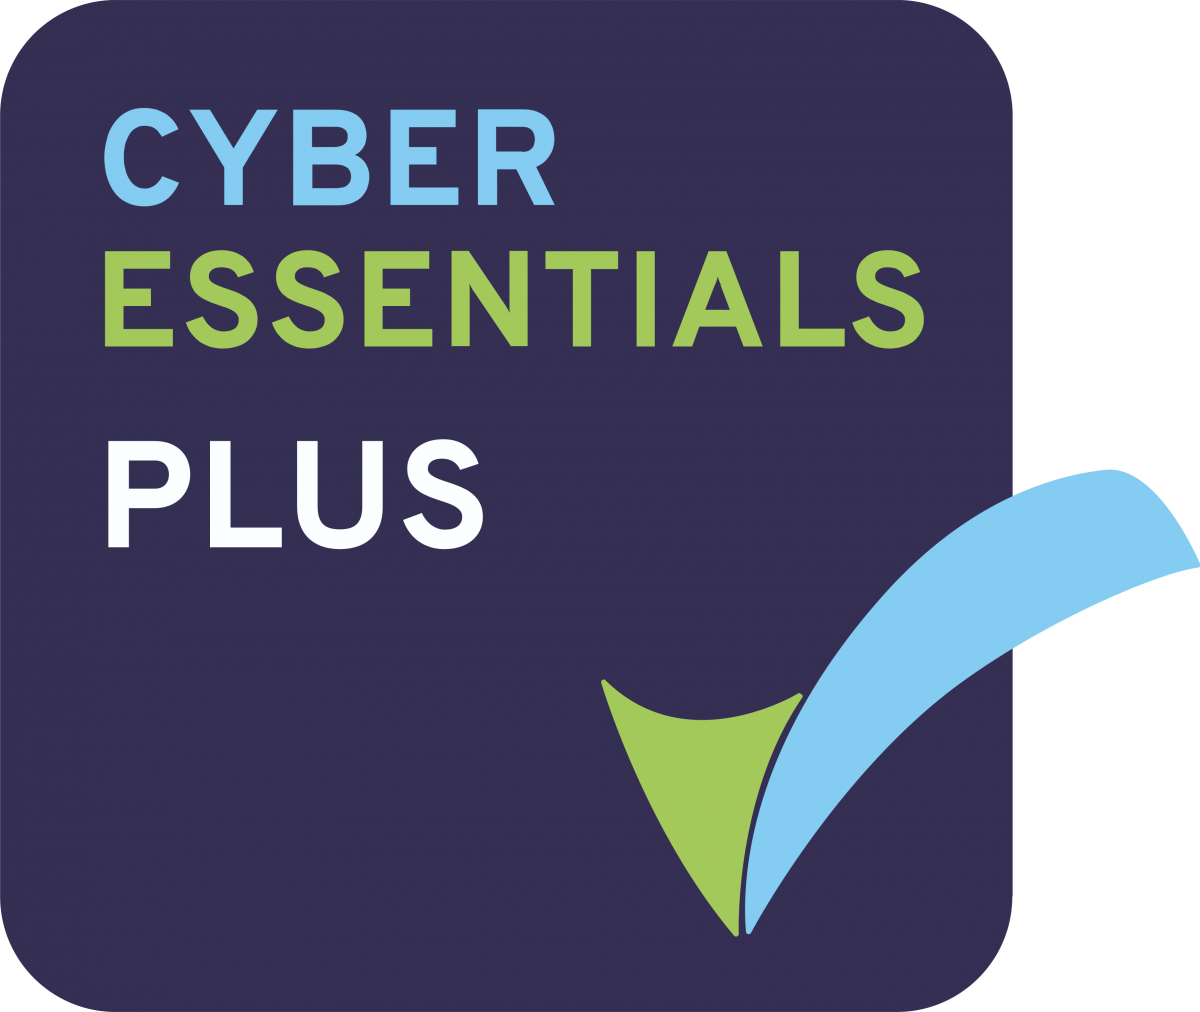 Bowman Riley is CYBER ESSENTIALS PLUS ACCREDITED!